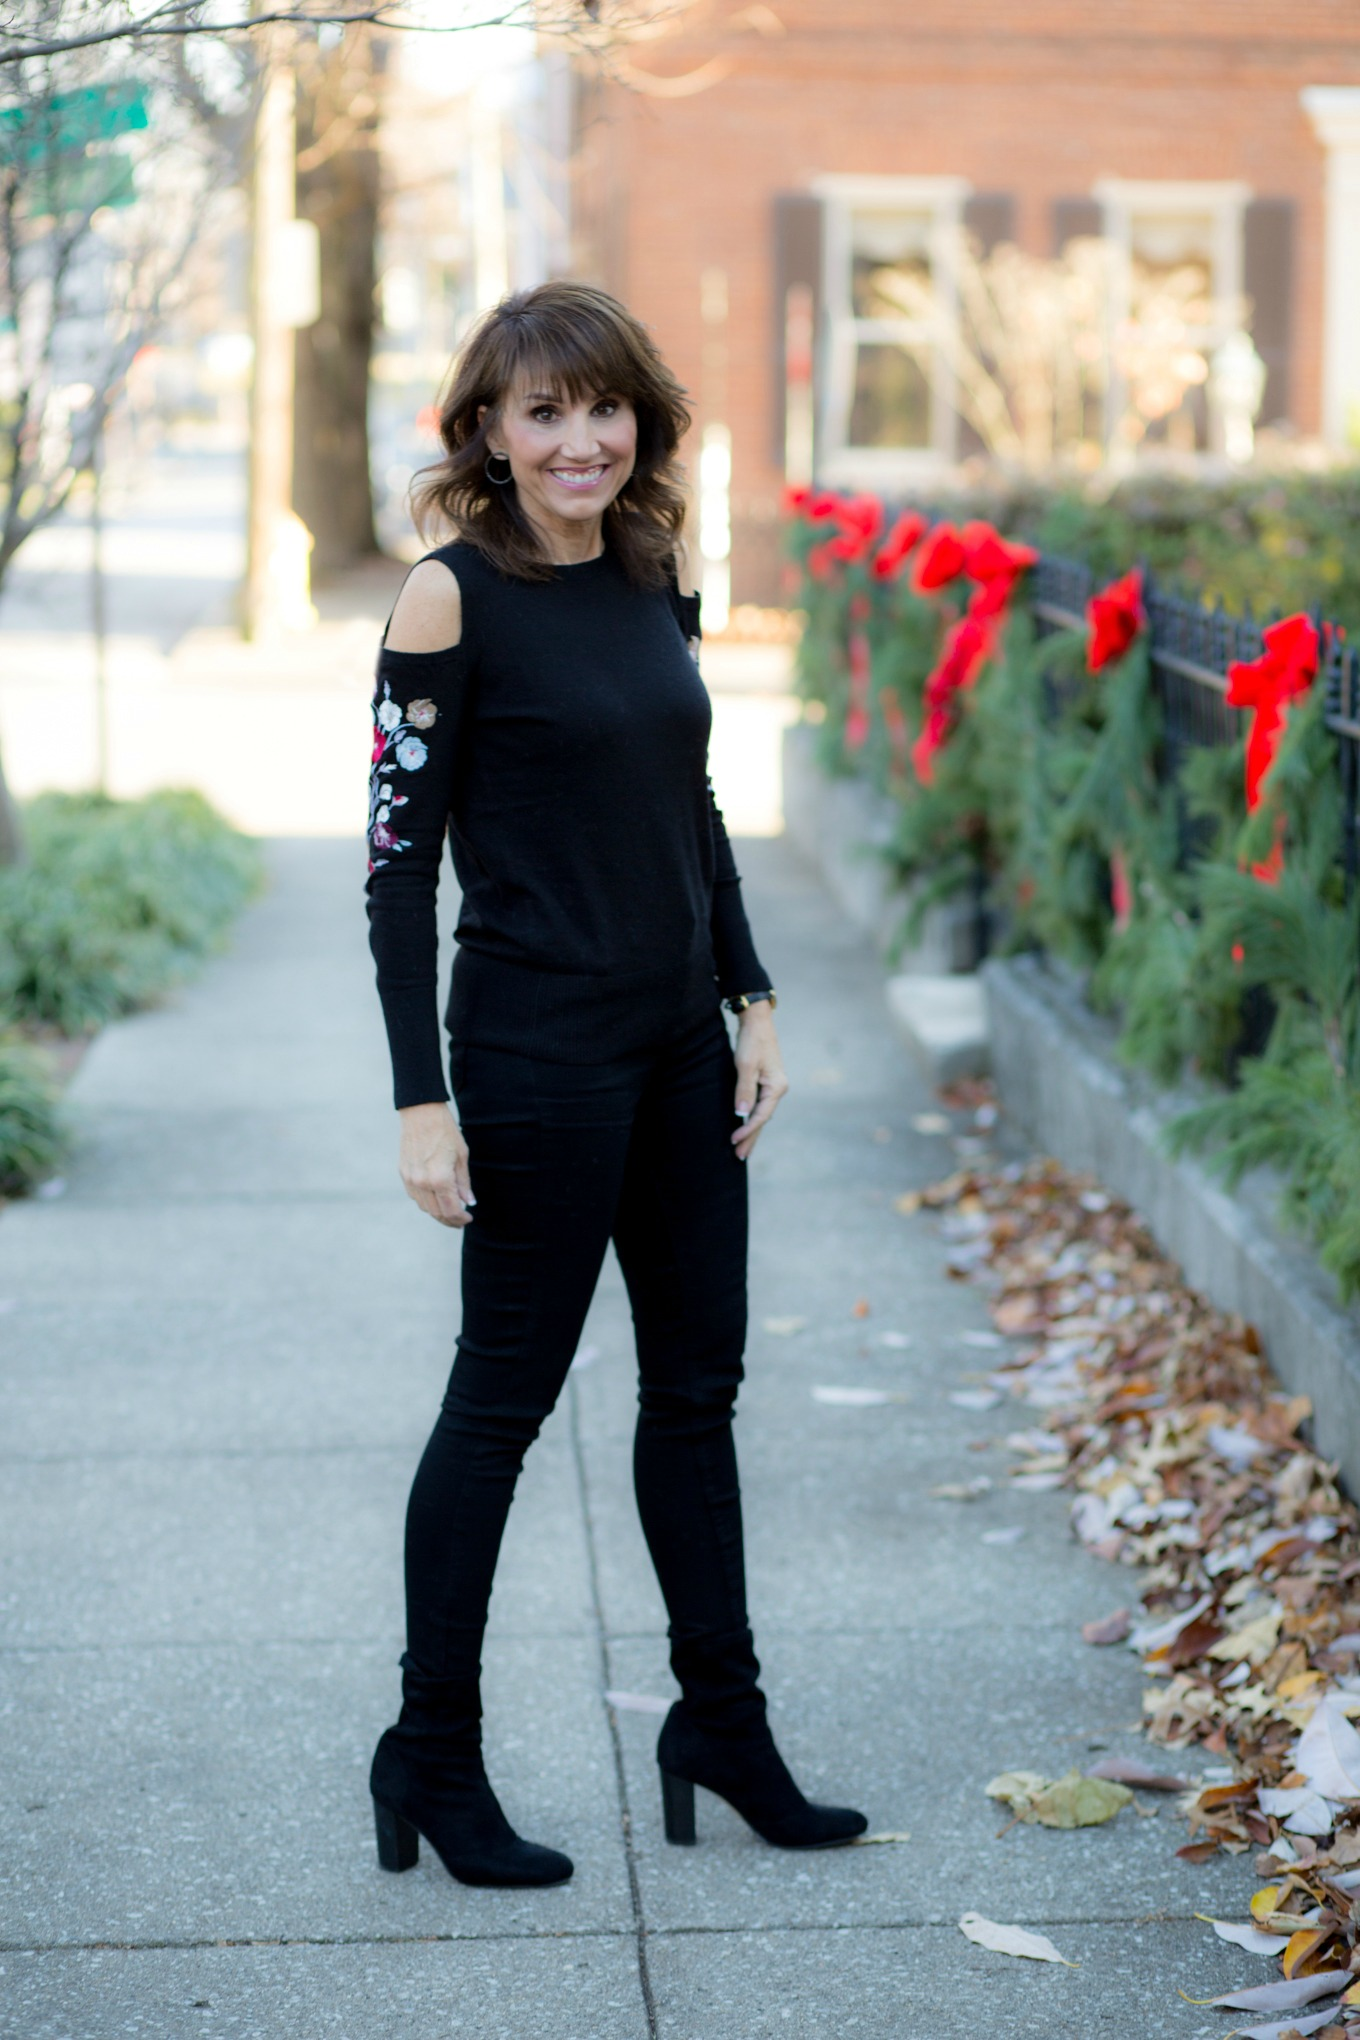 25 Days of Winter Fashion: Embroidered Sweater from LOFT